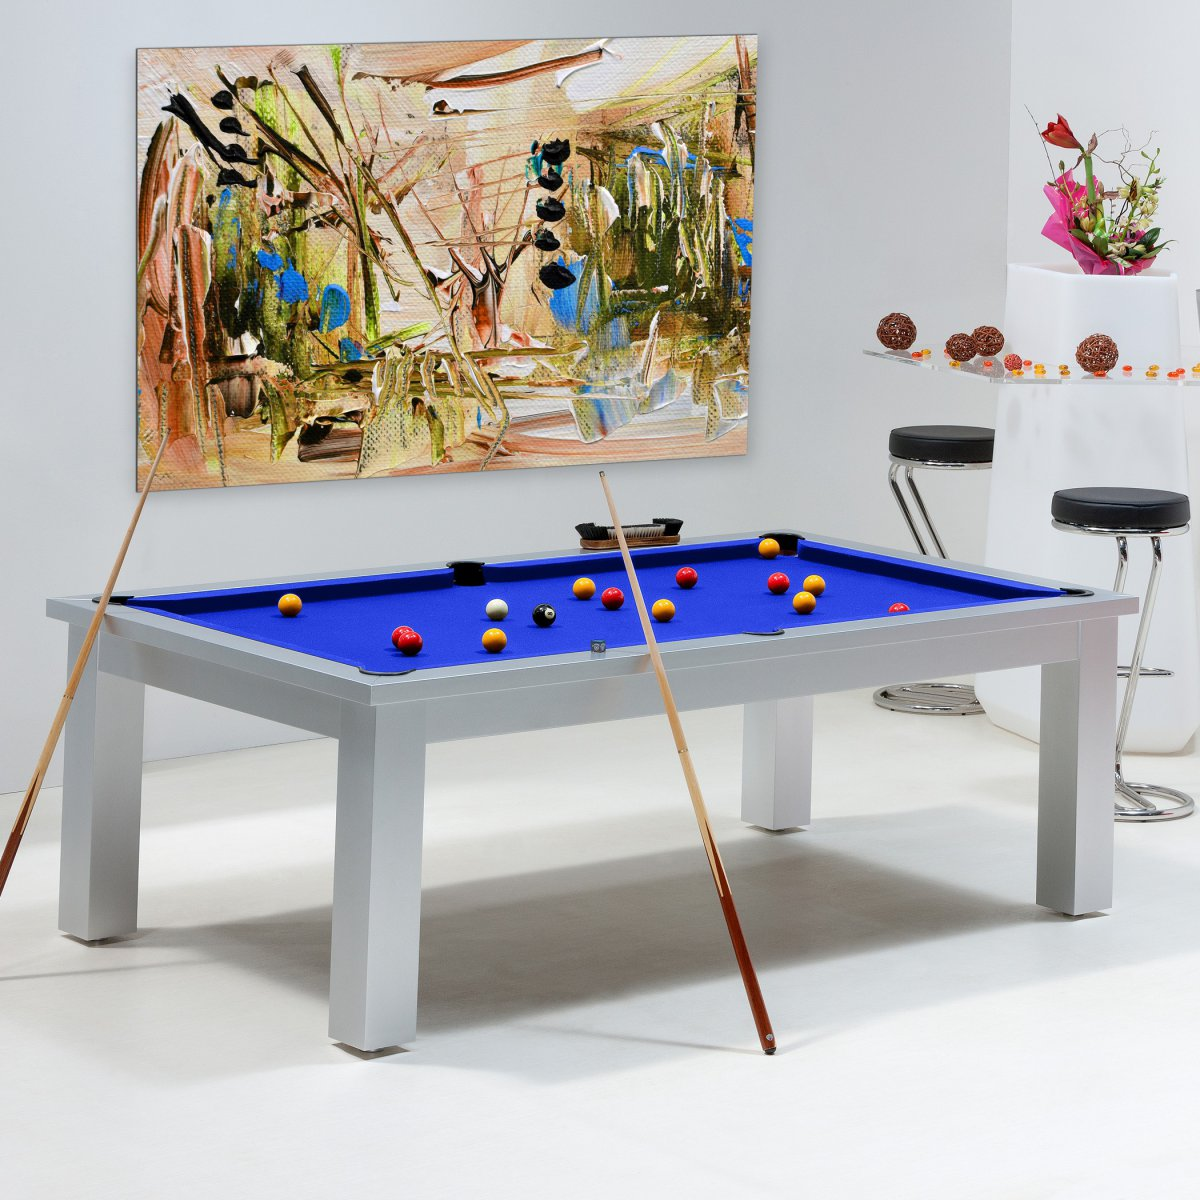 Billard table billard convertible billard table memphis - Billard convertible table ...